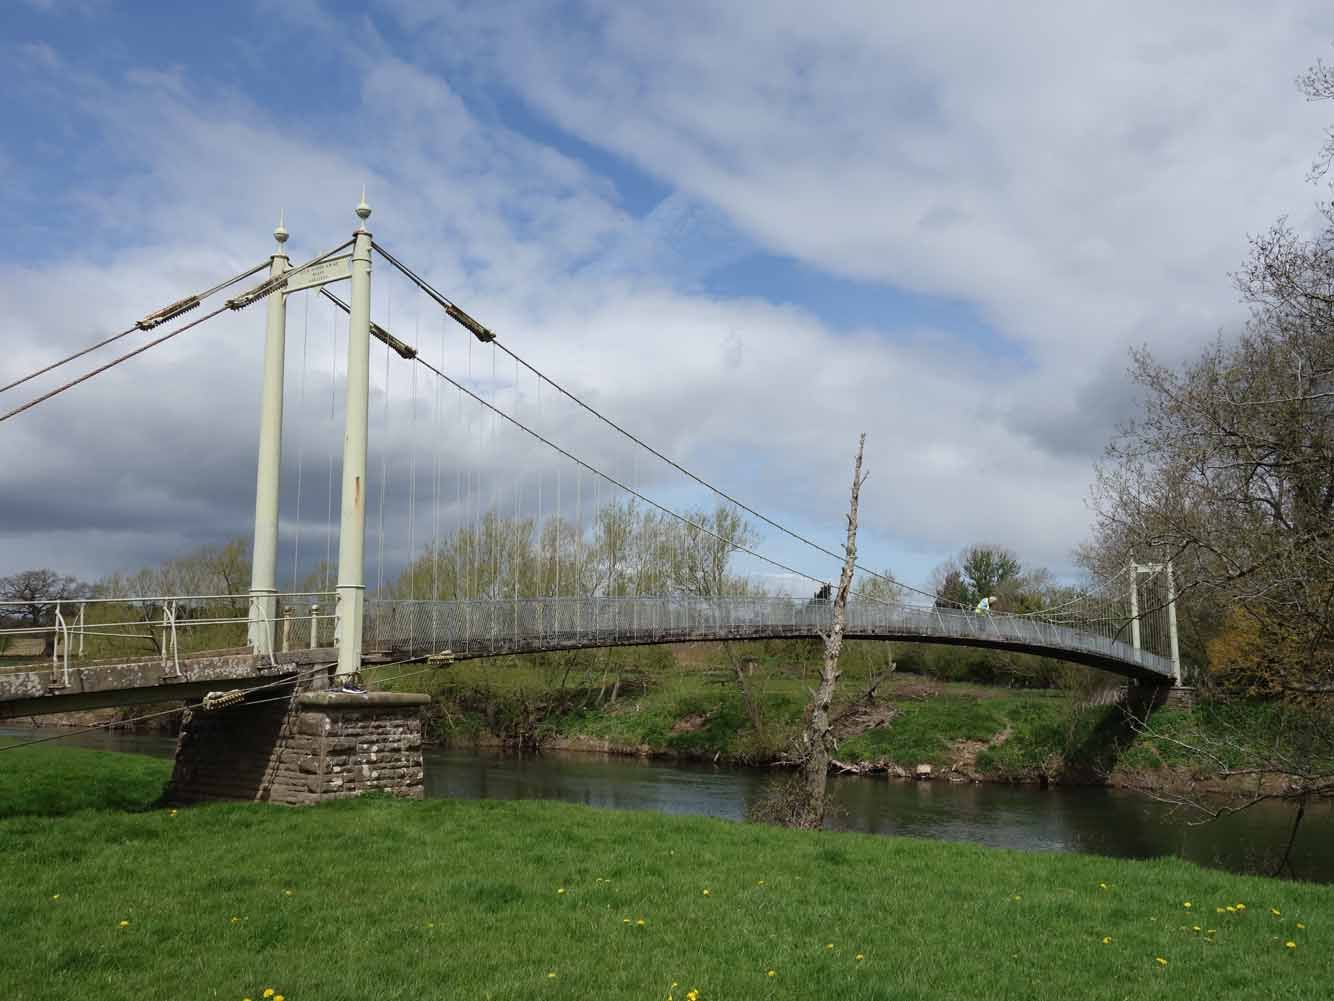 Sellack bridge over the river wye